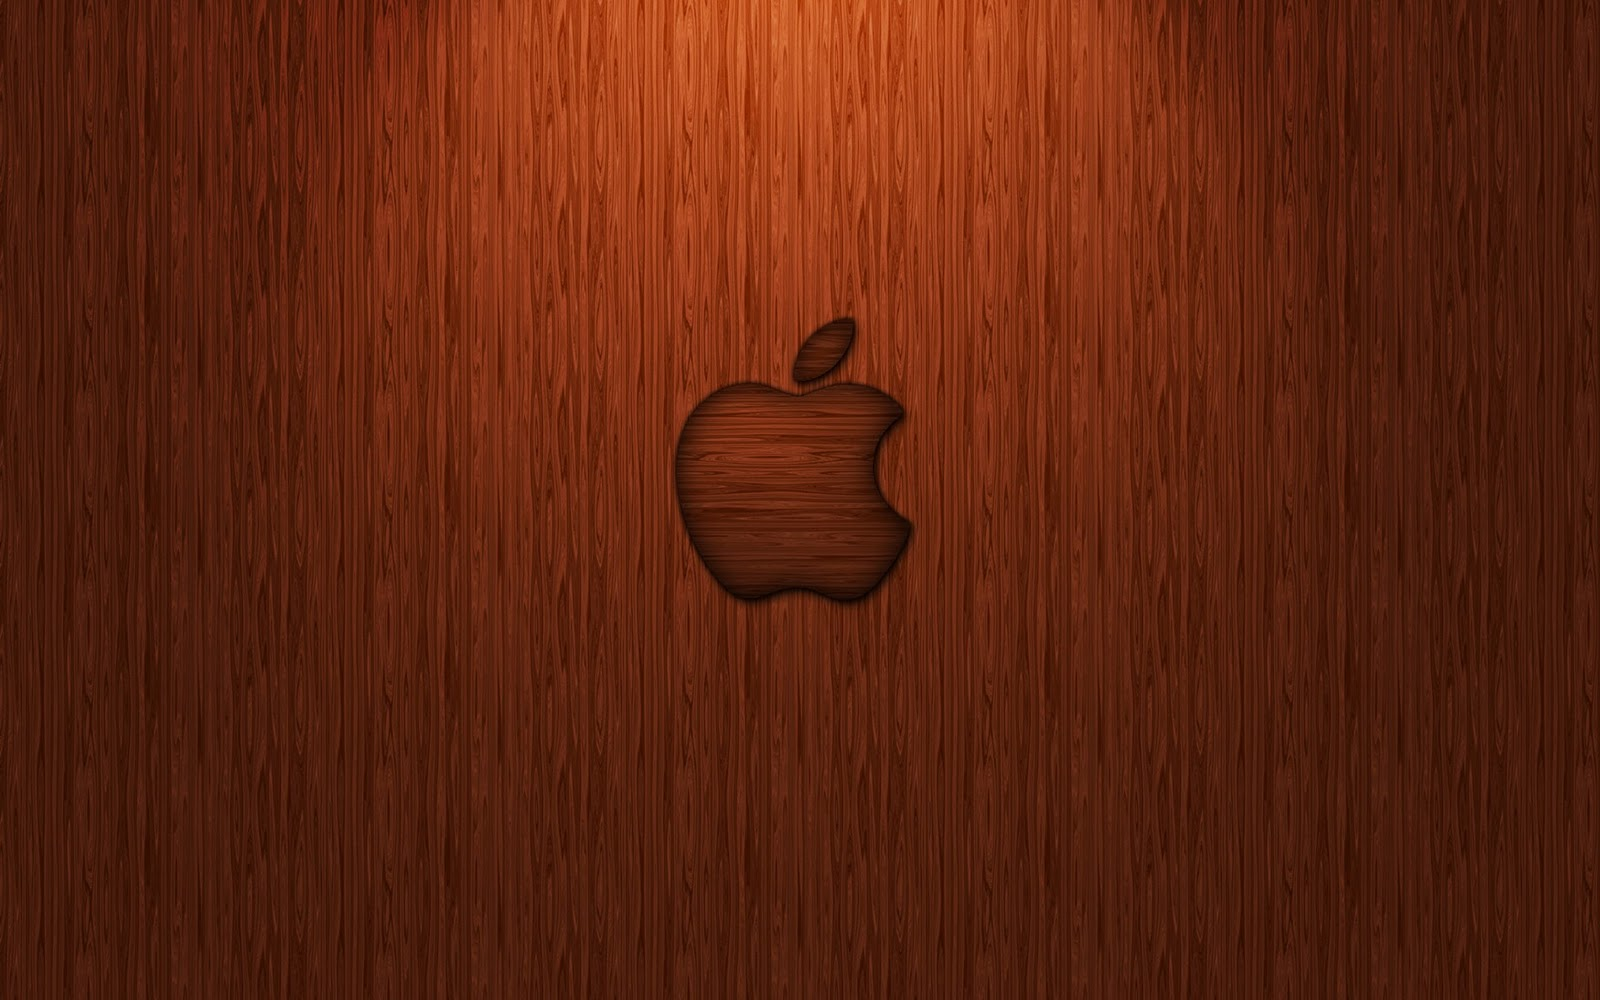 Download Wood Grain Wallpaper 15241 1600x1000 Px High